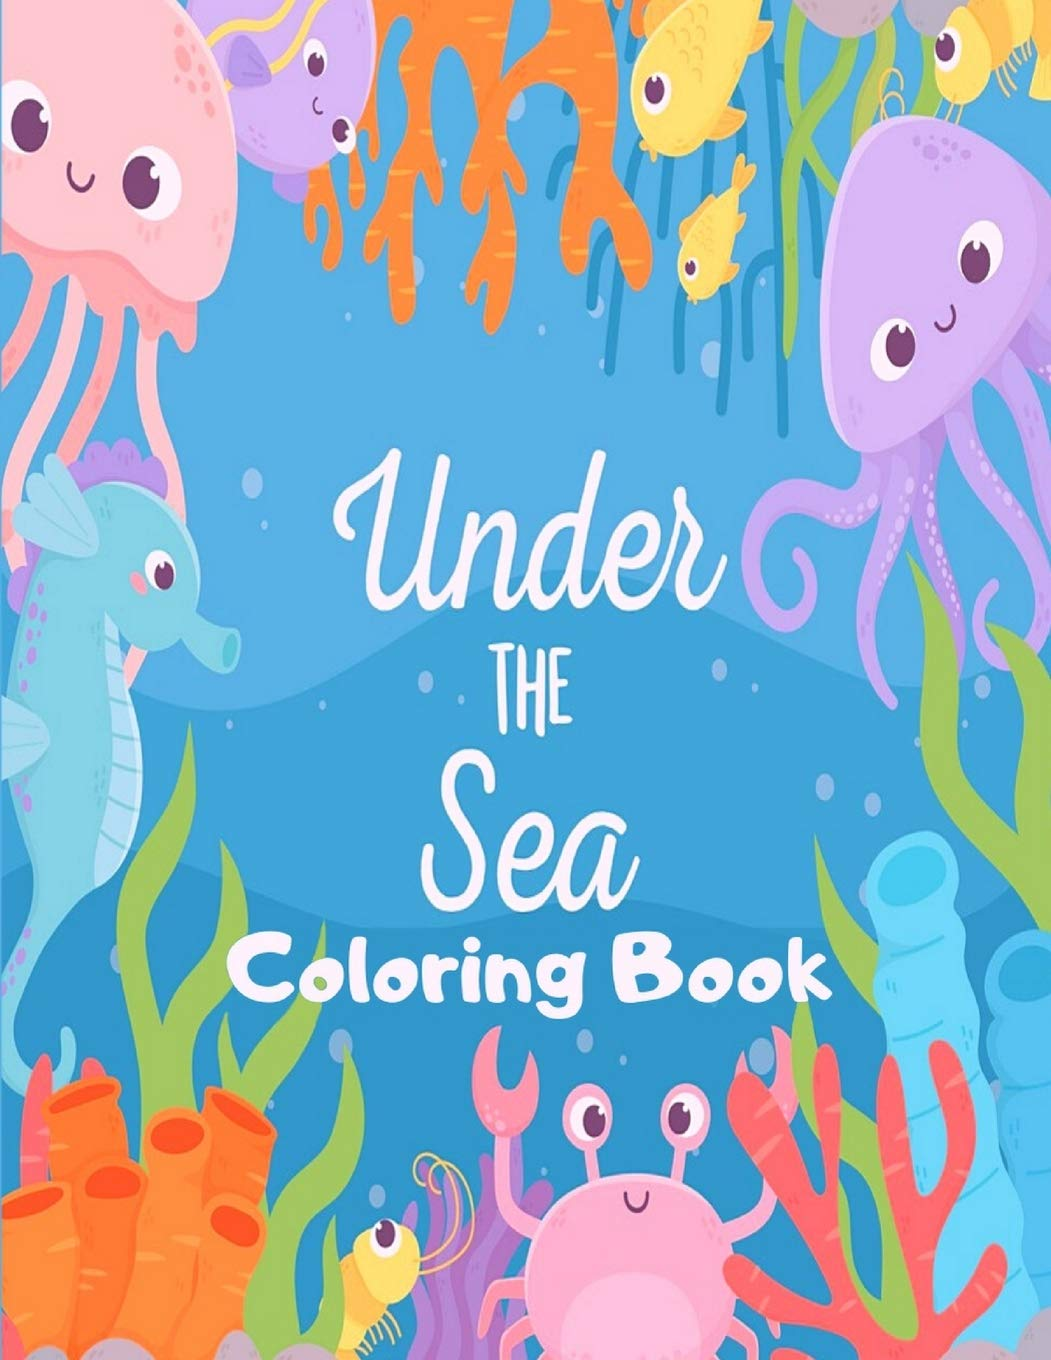 Under The Sea Coloring Book Funny Marine Life Colouring Book For Kids 30 Pages Of Cartoon Ocean Animals Sea Creatures With Underwater Backgrounds Under The Sea Gifts For Children